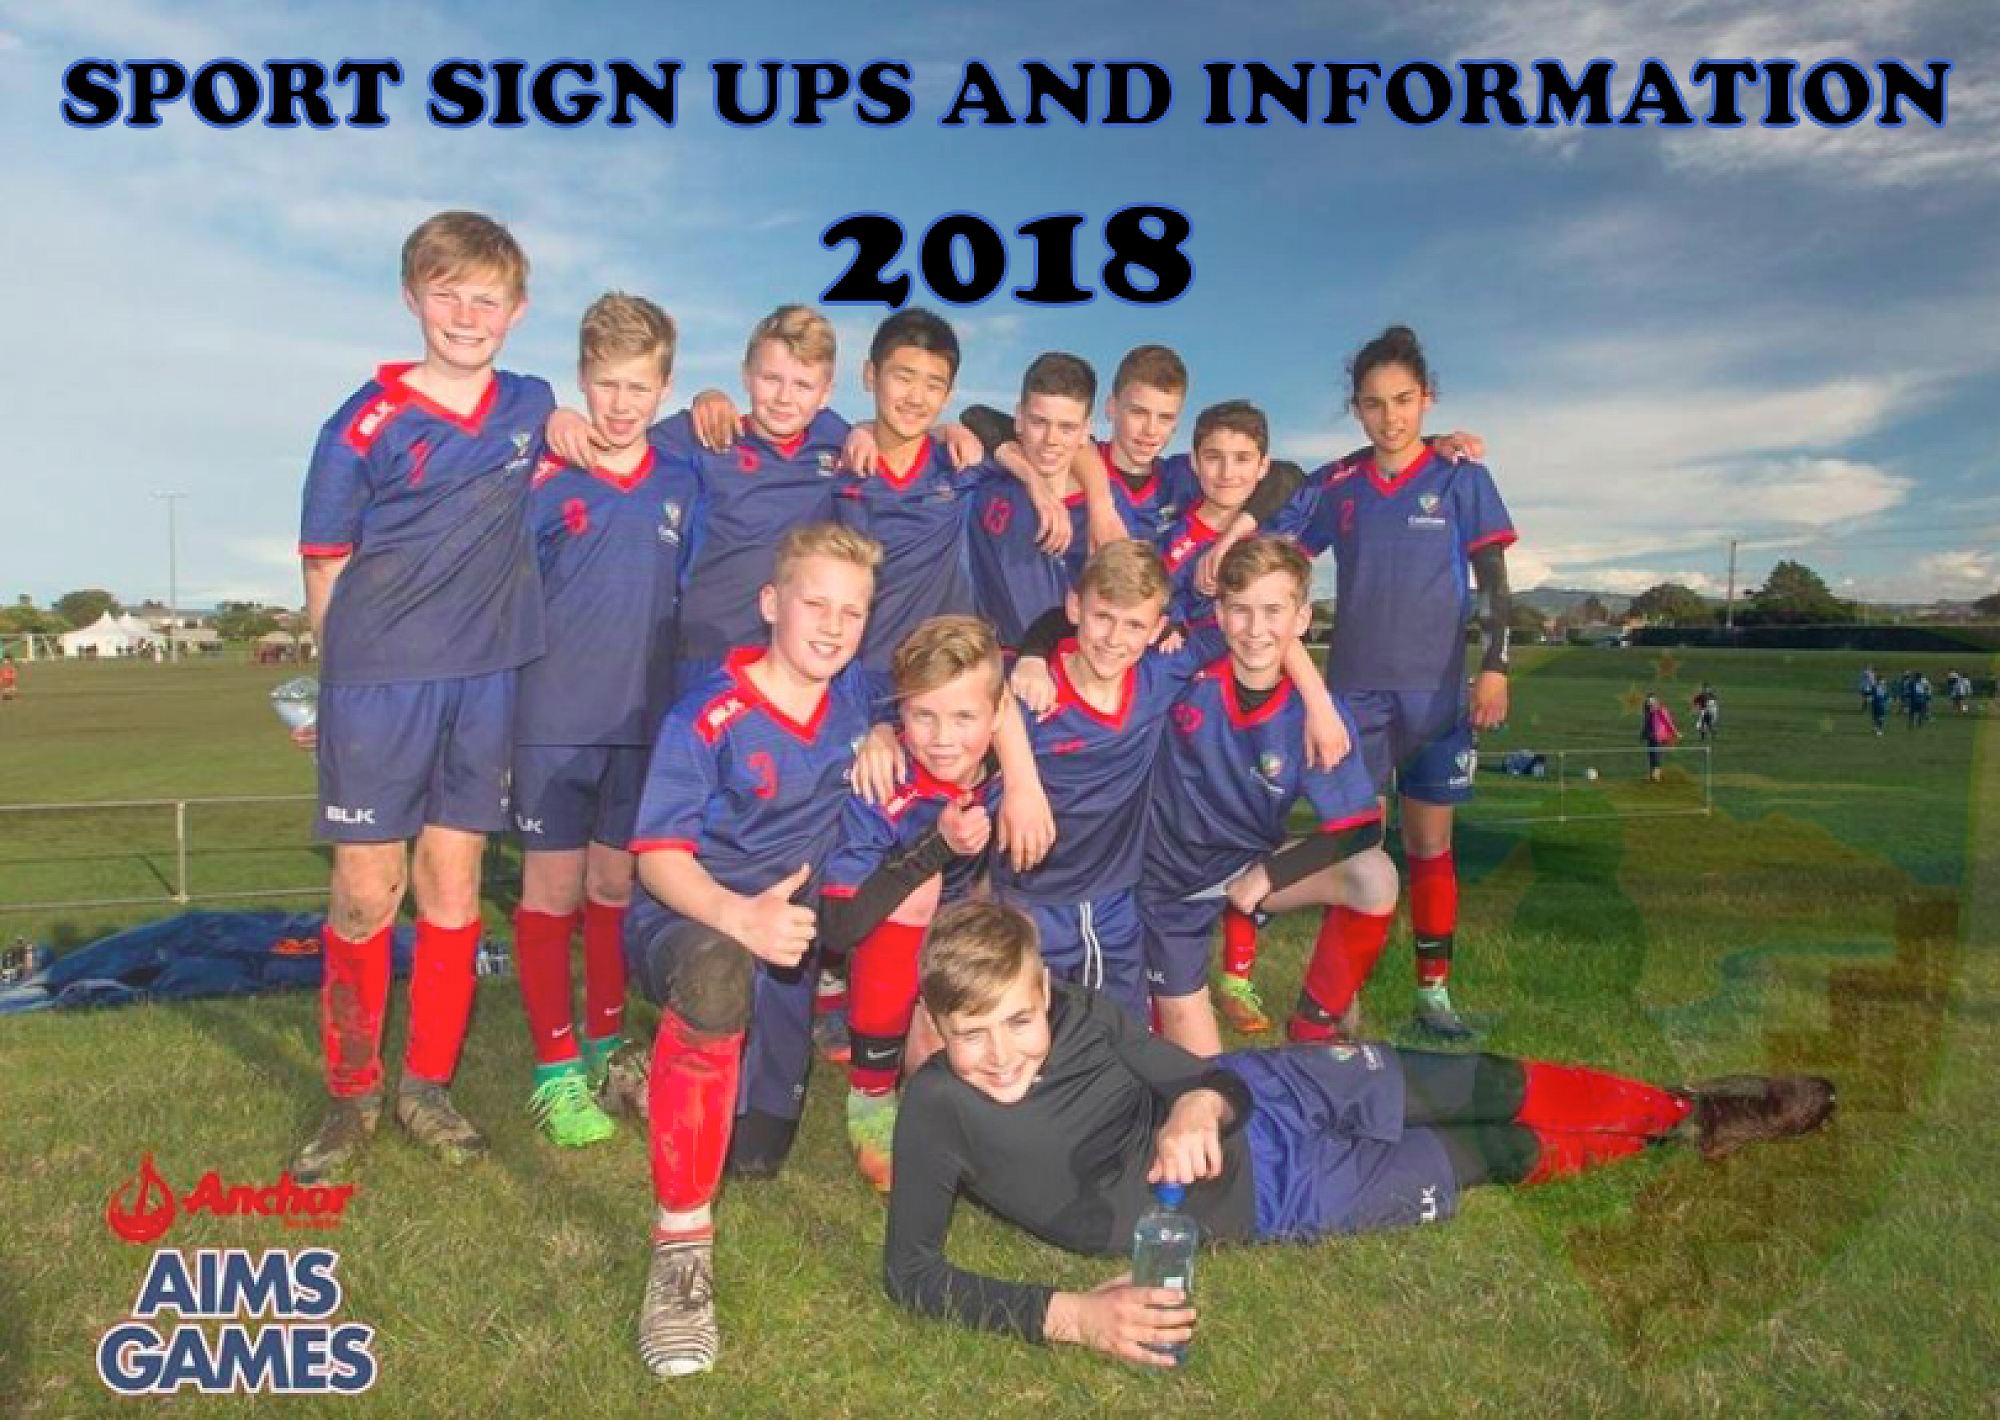 sport sign ups 2018 sports page